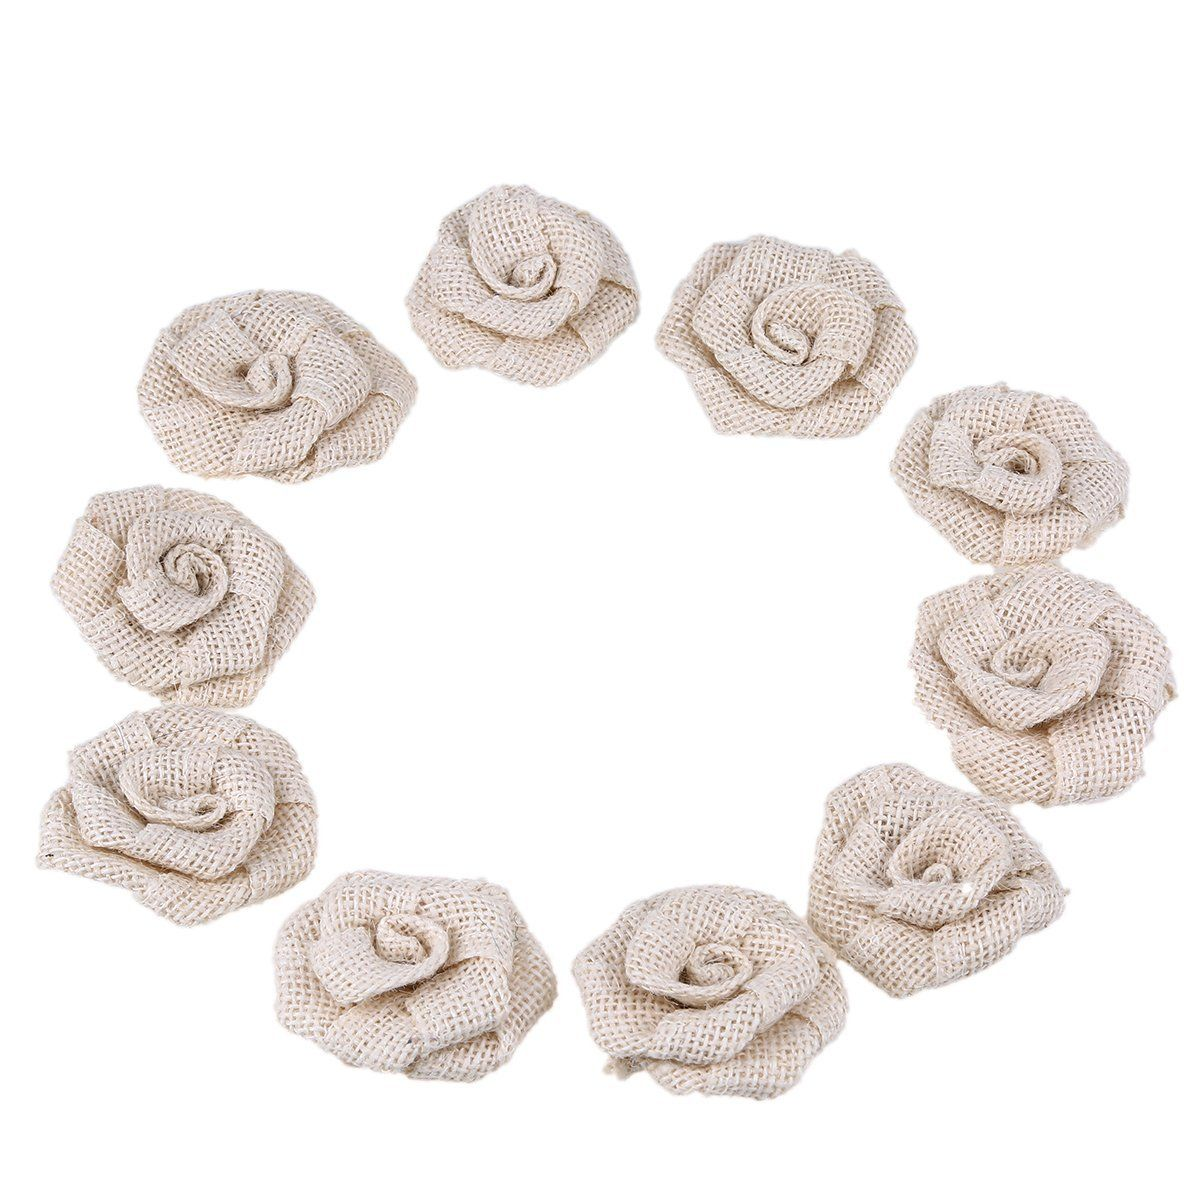 Whosee White Cotton and Linen Rose Handmade Flower DIY Brooch Shoes Gift Hat Party Decoration 10 Pack *** Click image to review more details.